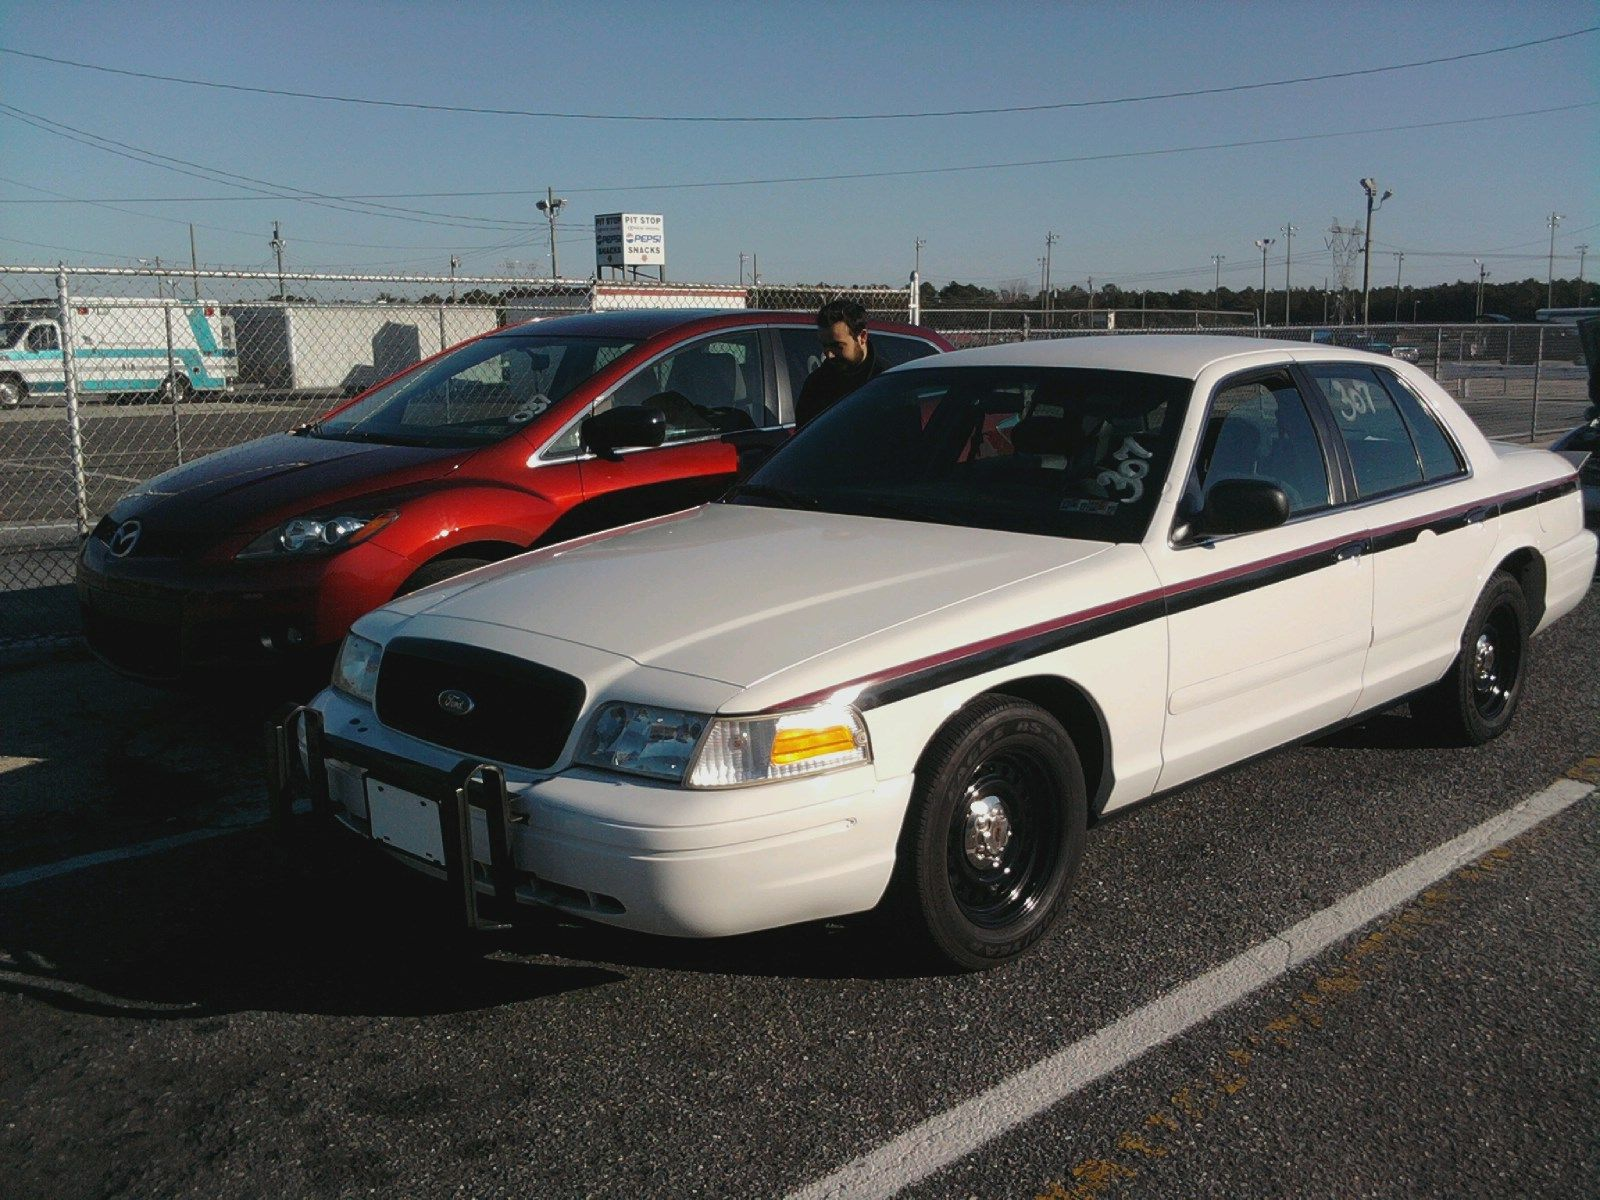 Ford crown victoria p71 police interceptor favorite victoria